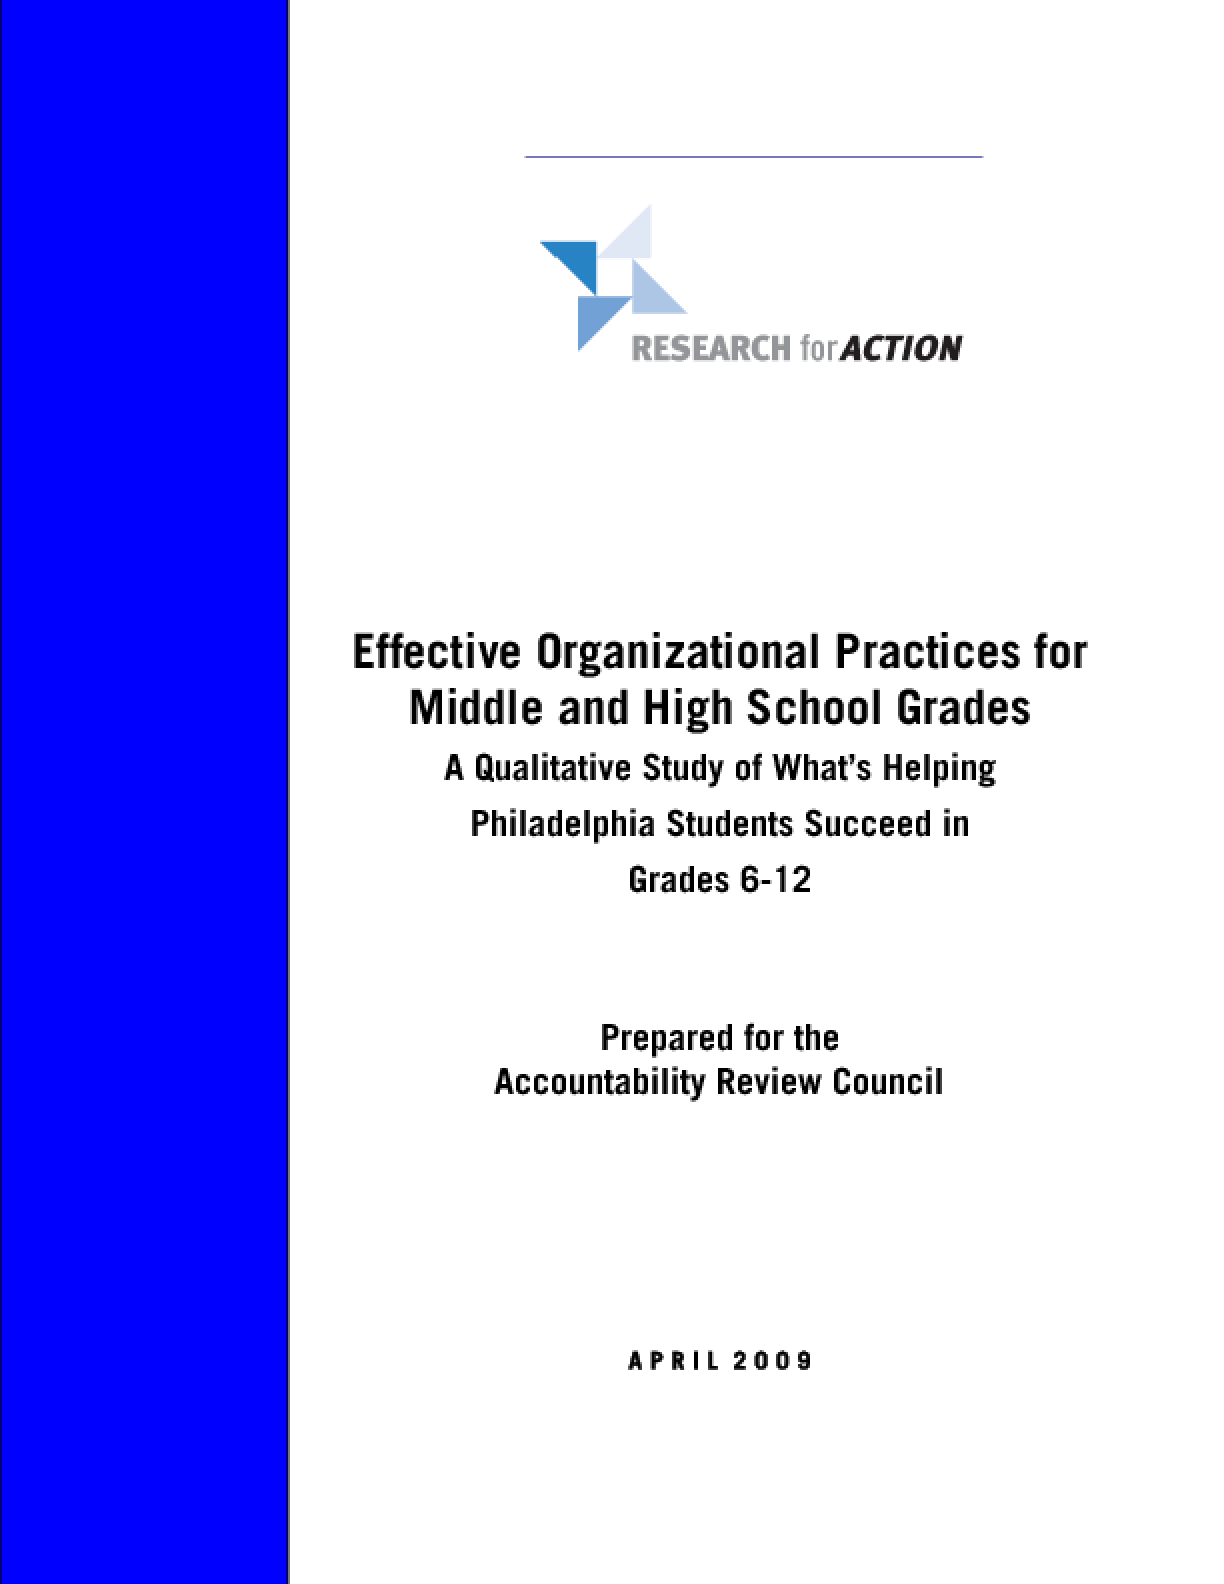 Effective Organizational Practices for Middle and High School Grades